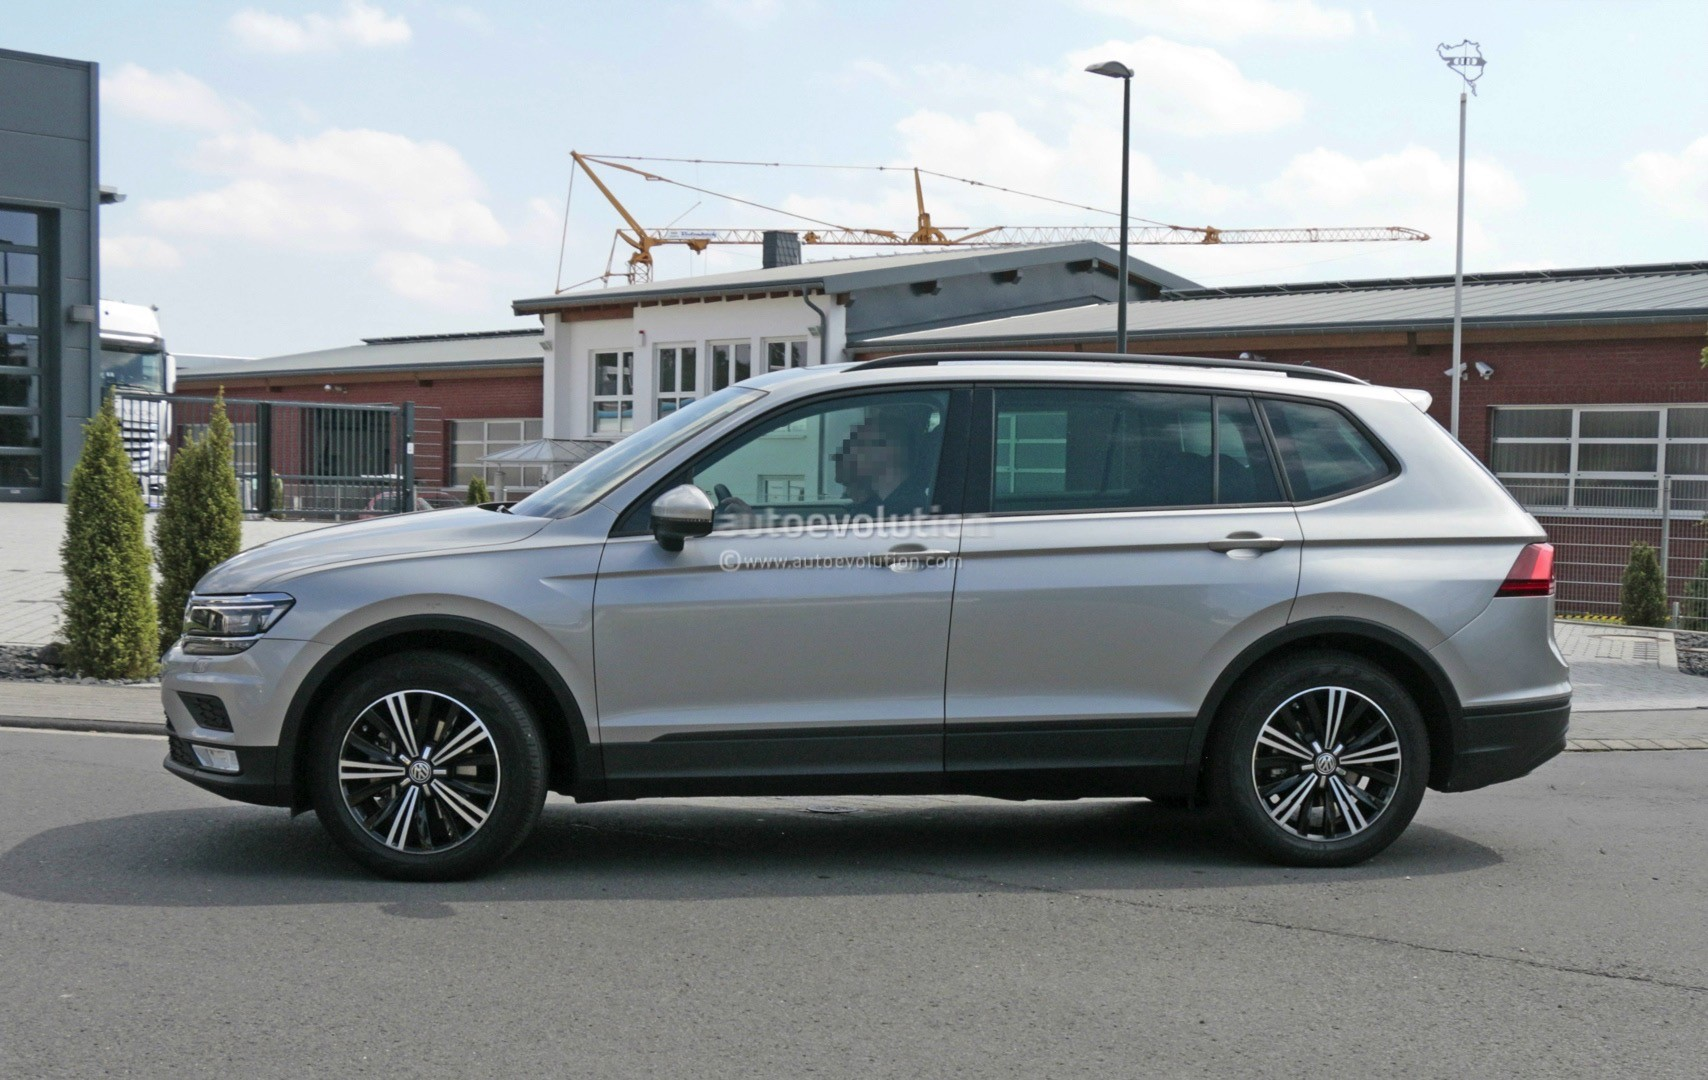 2018 volkswagen tiguan allspace 7 seater teased for detroit autoevolution. Black Bedroom Furniture Sets. Home Design Ideas